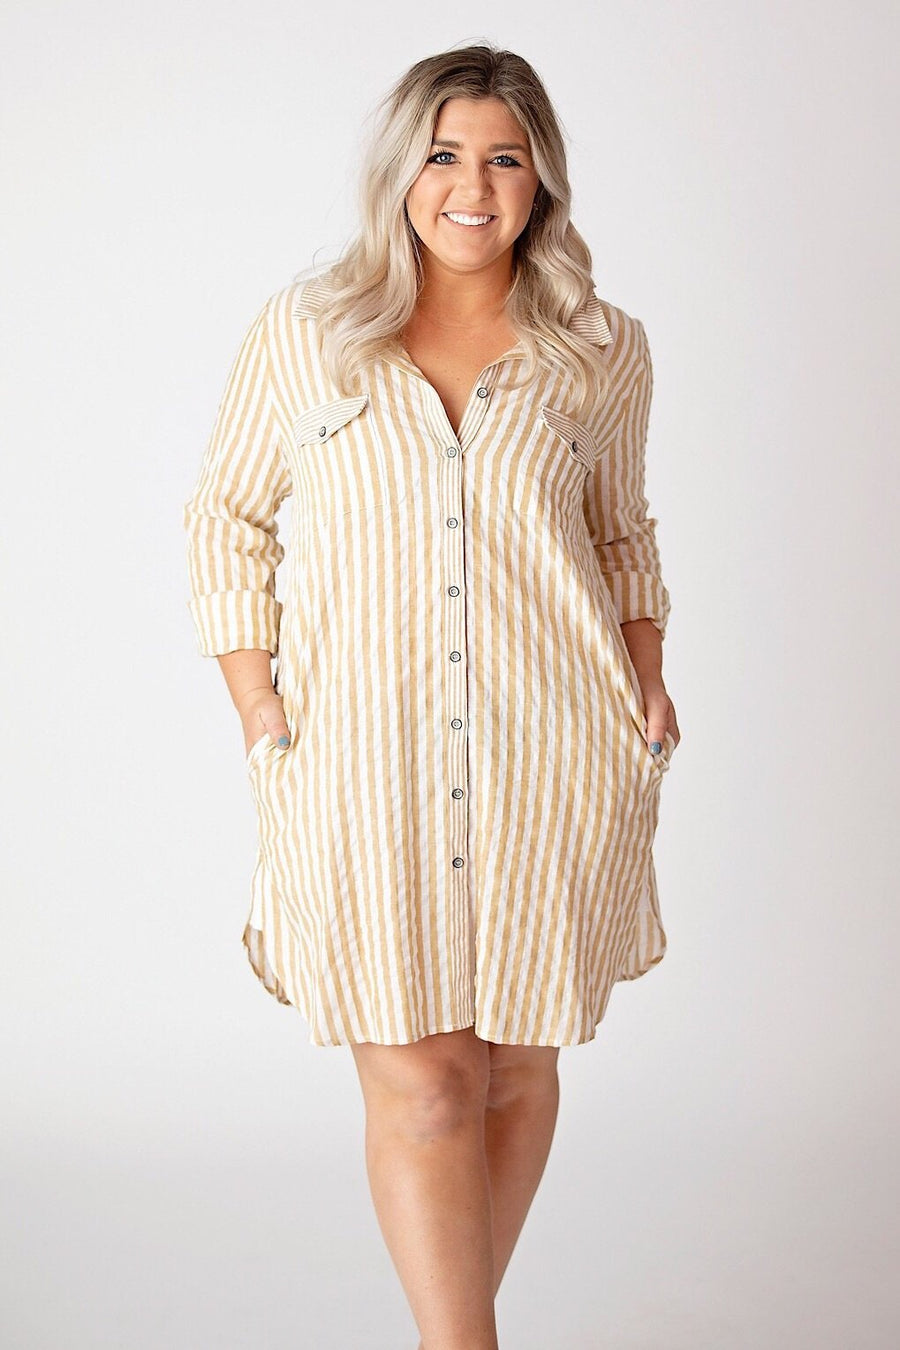 Mystree Dress Small Mustard/Off White tie back stripe shirt dress